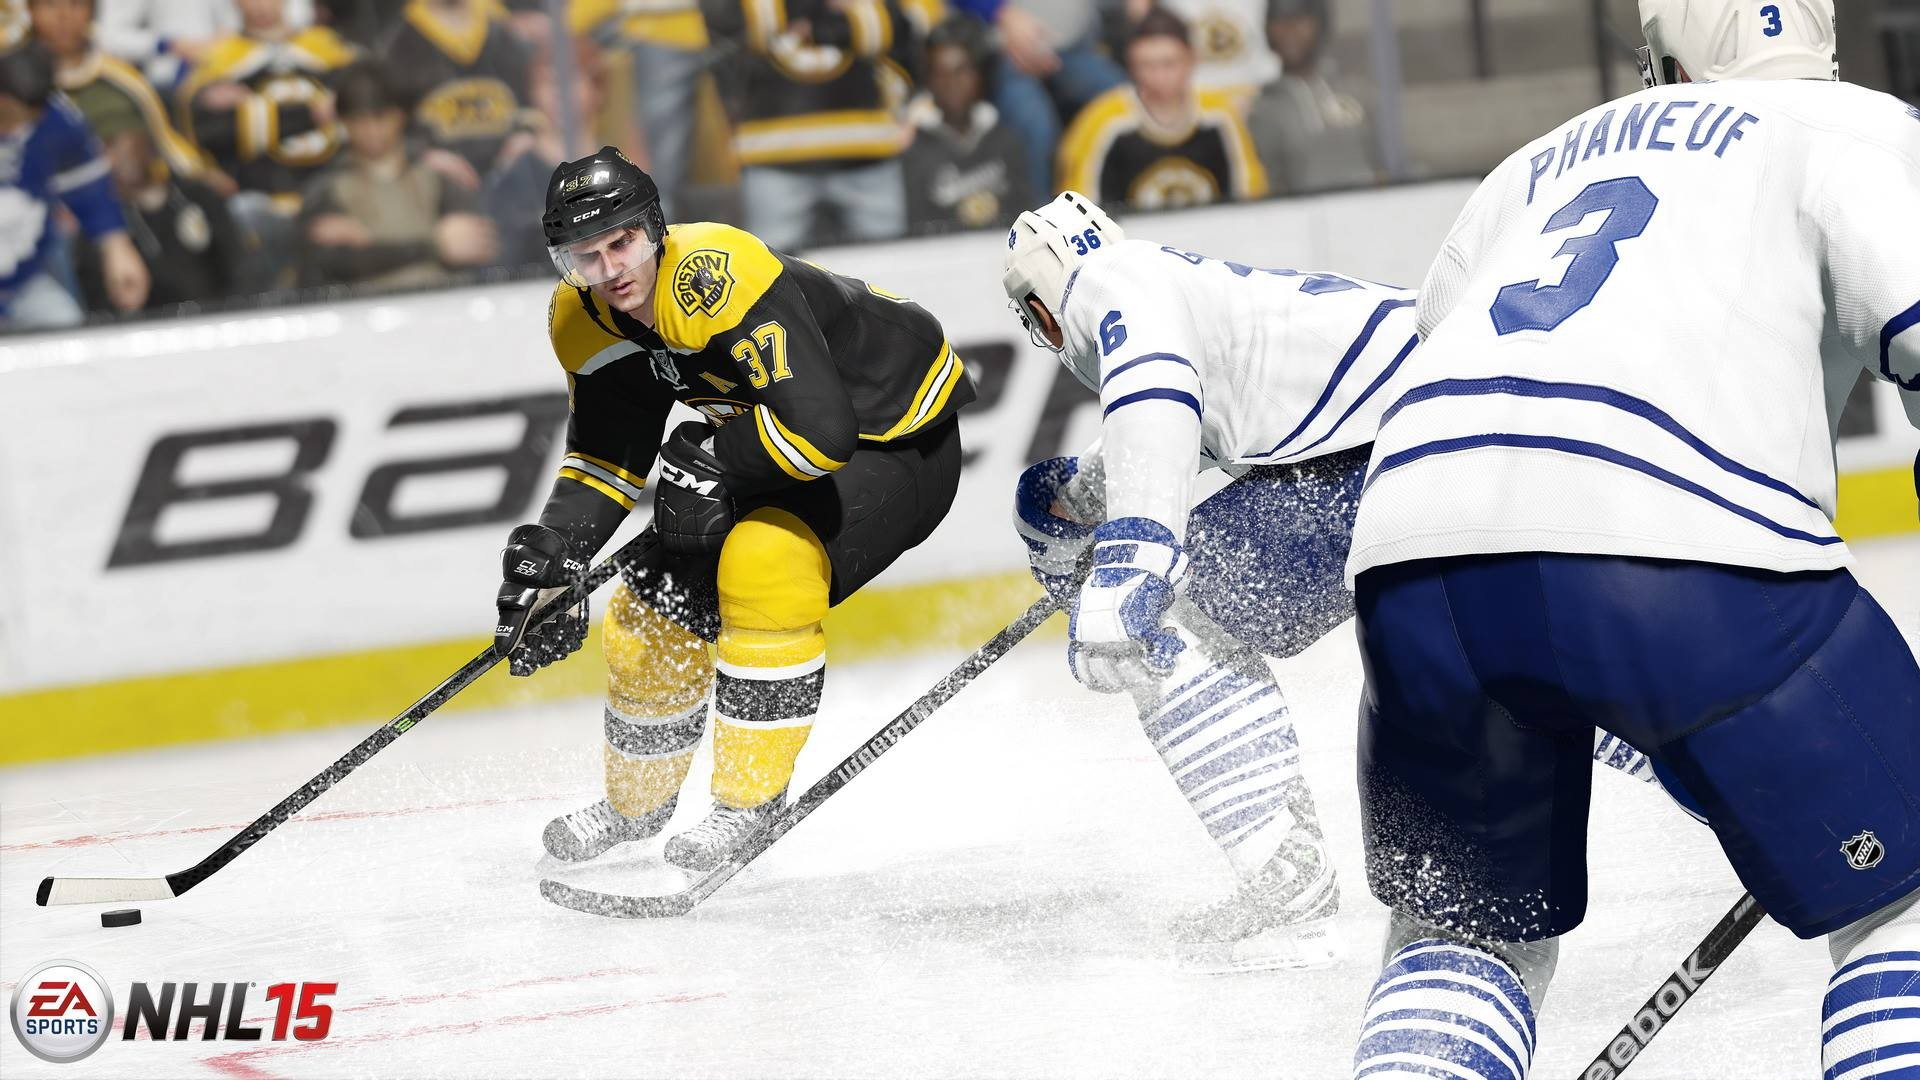 NHL 15 Release Date (Xbox 360, PS3, Xbox One, PS4)